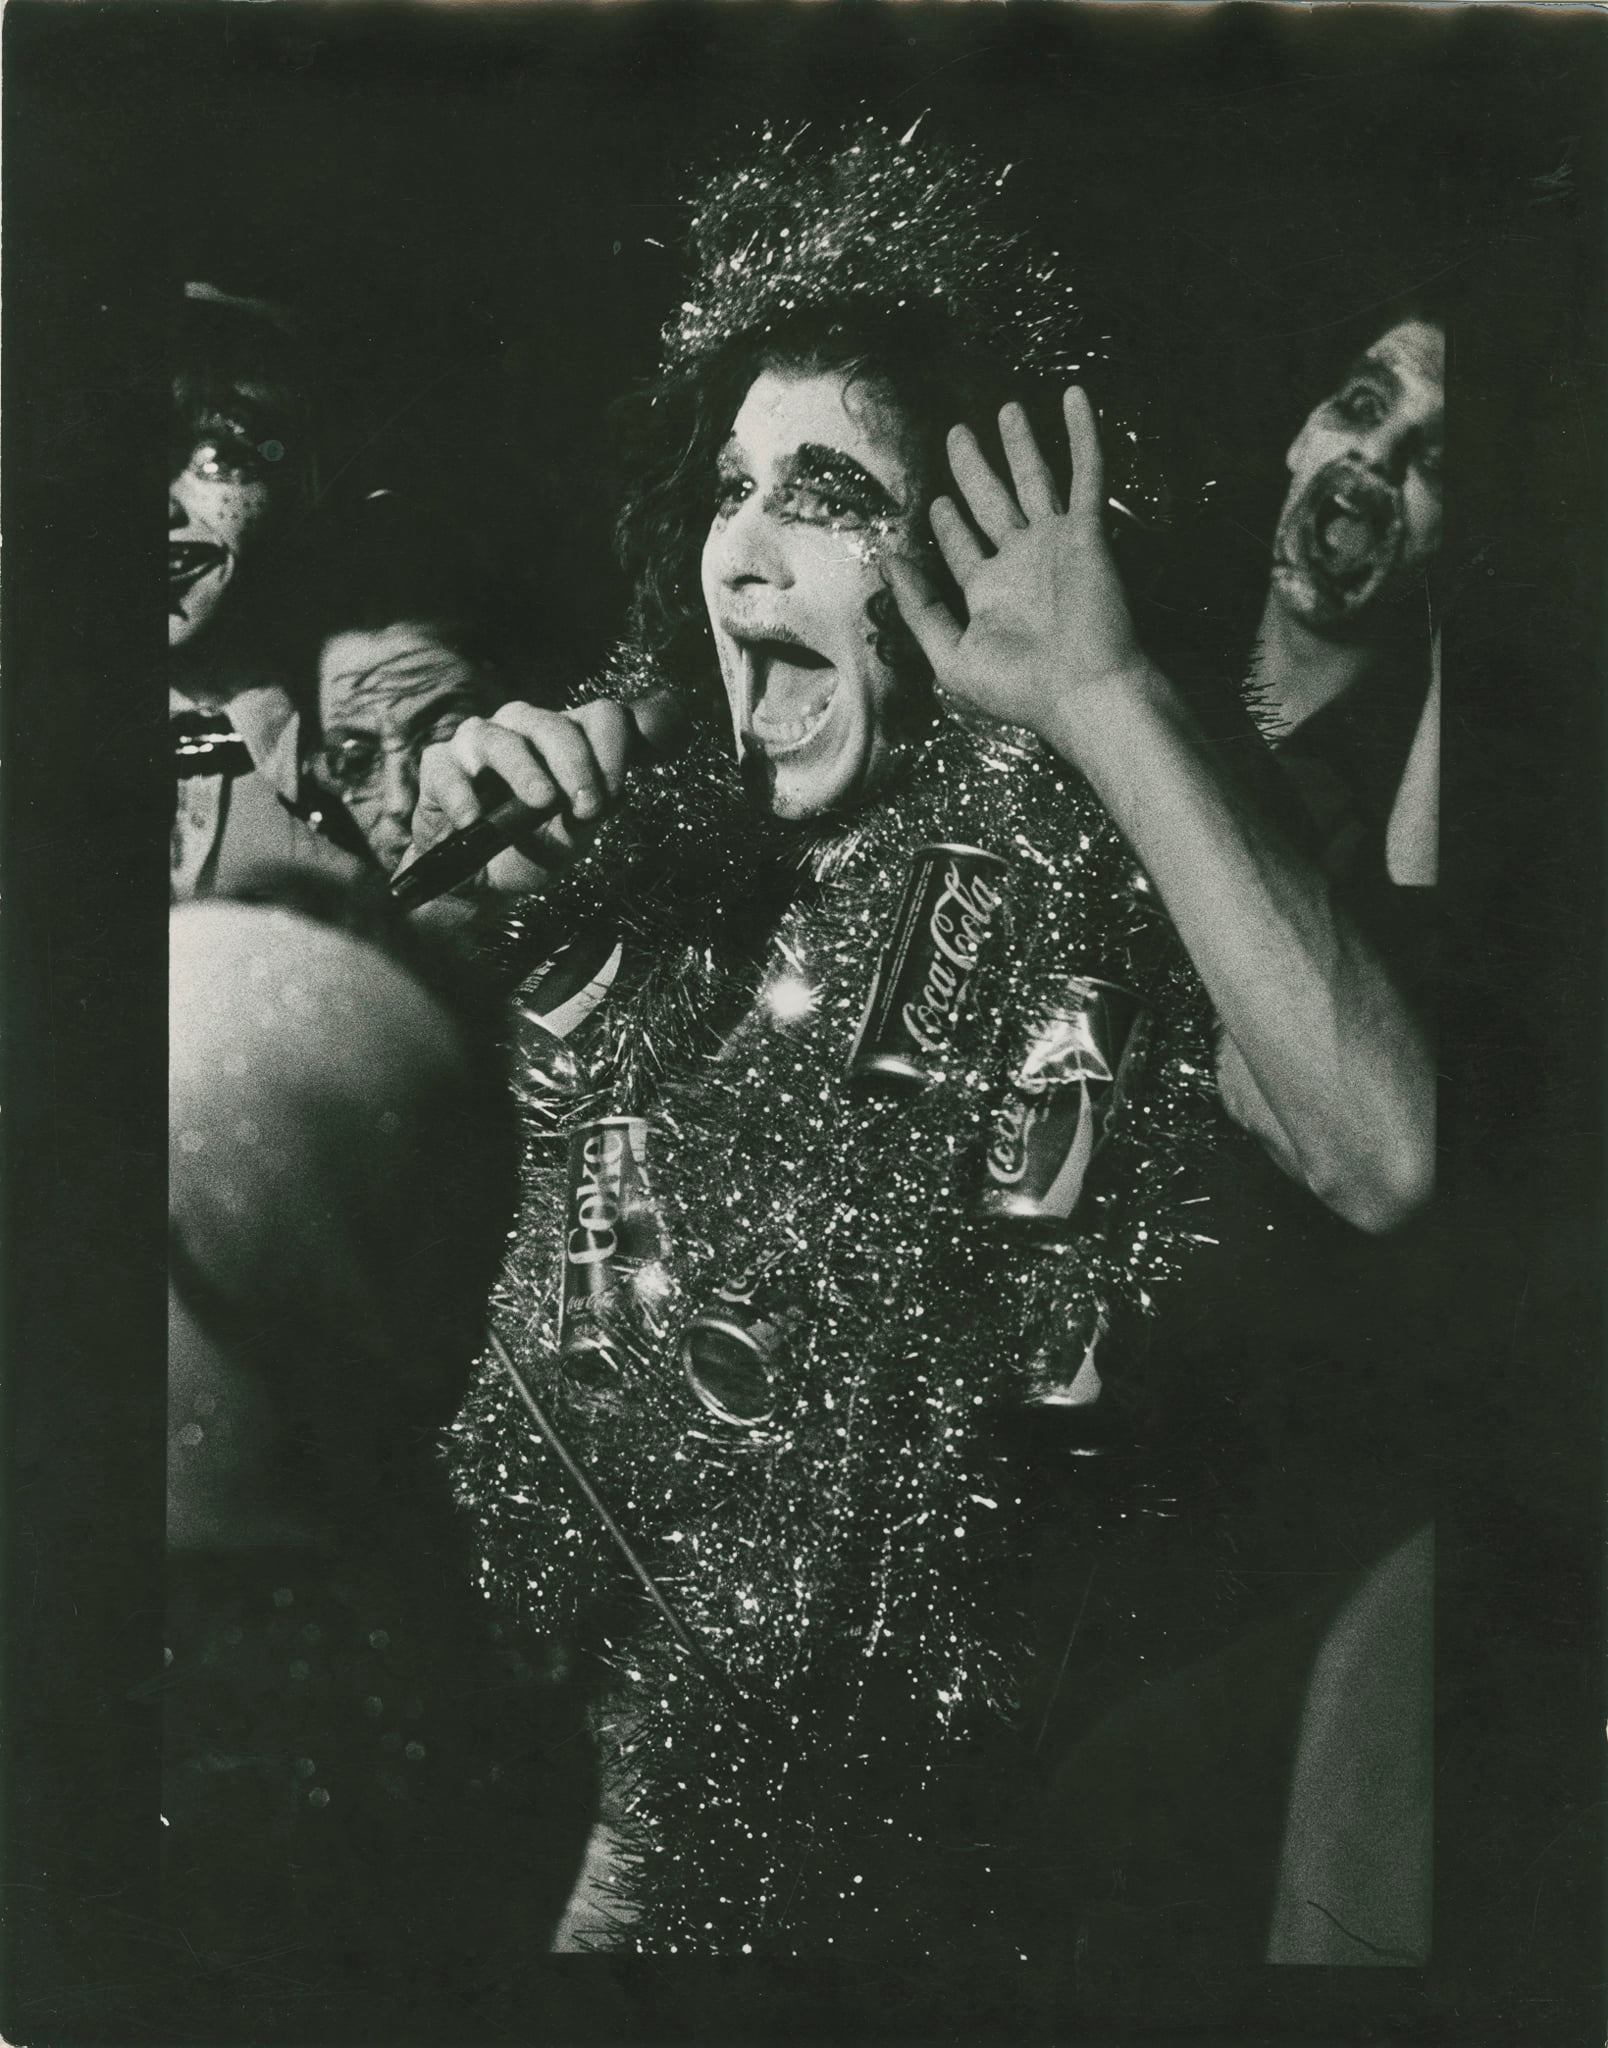 An actor is holding a microphone and wearing a costume made of tinsel and Coca-Cola cans and a crown of tinsel